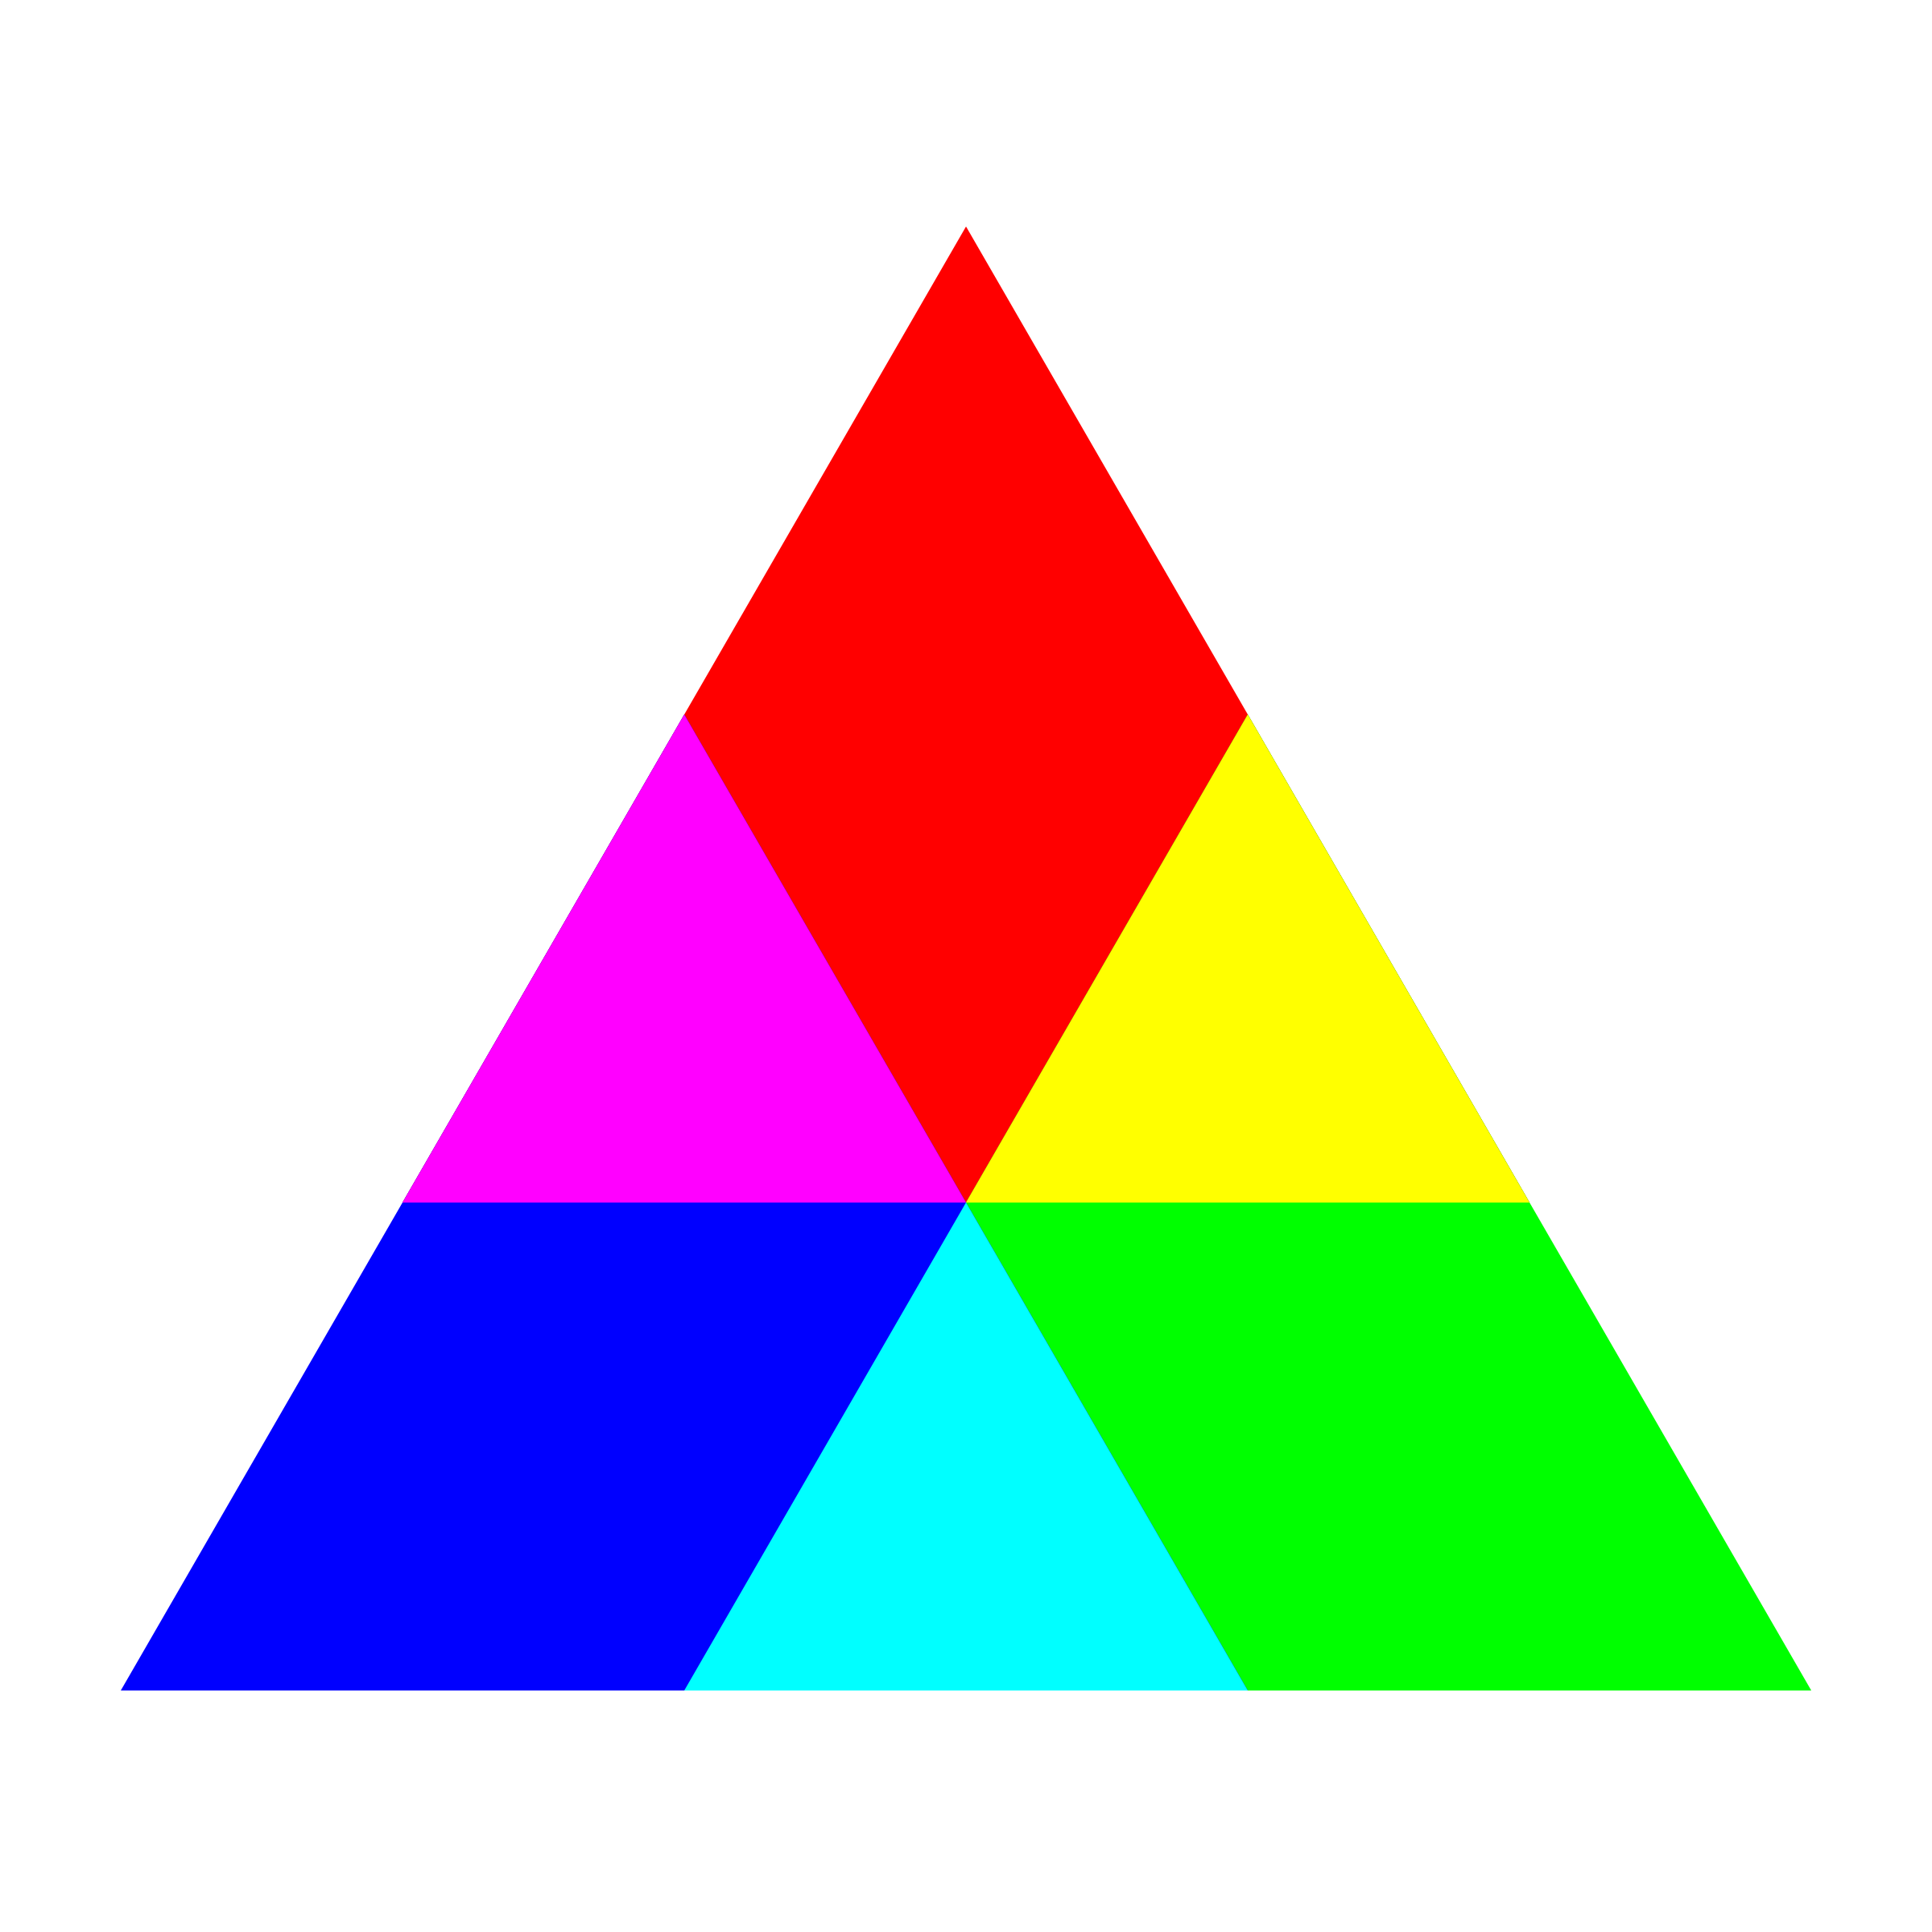 triangle rgb mix by 10binary